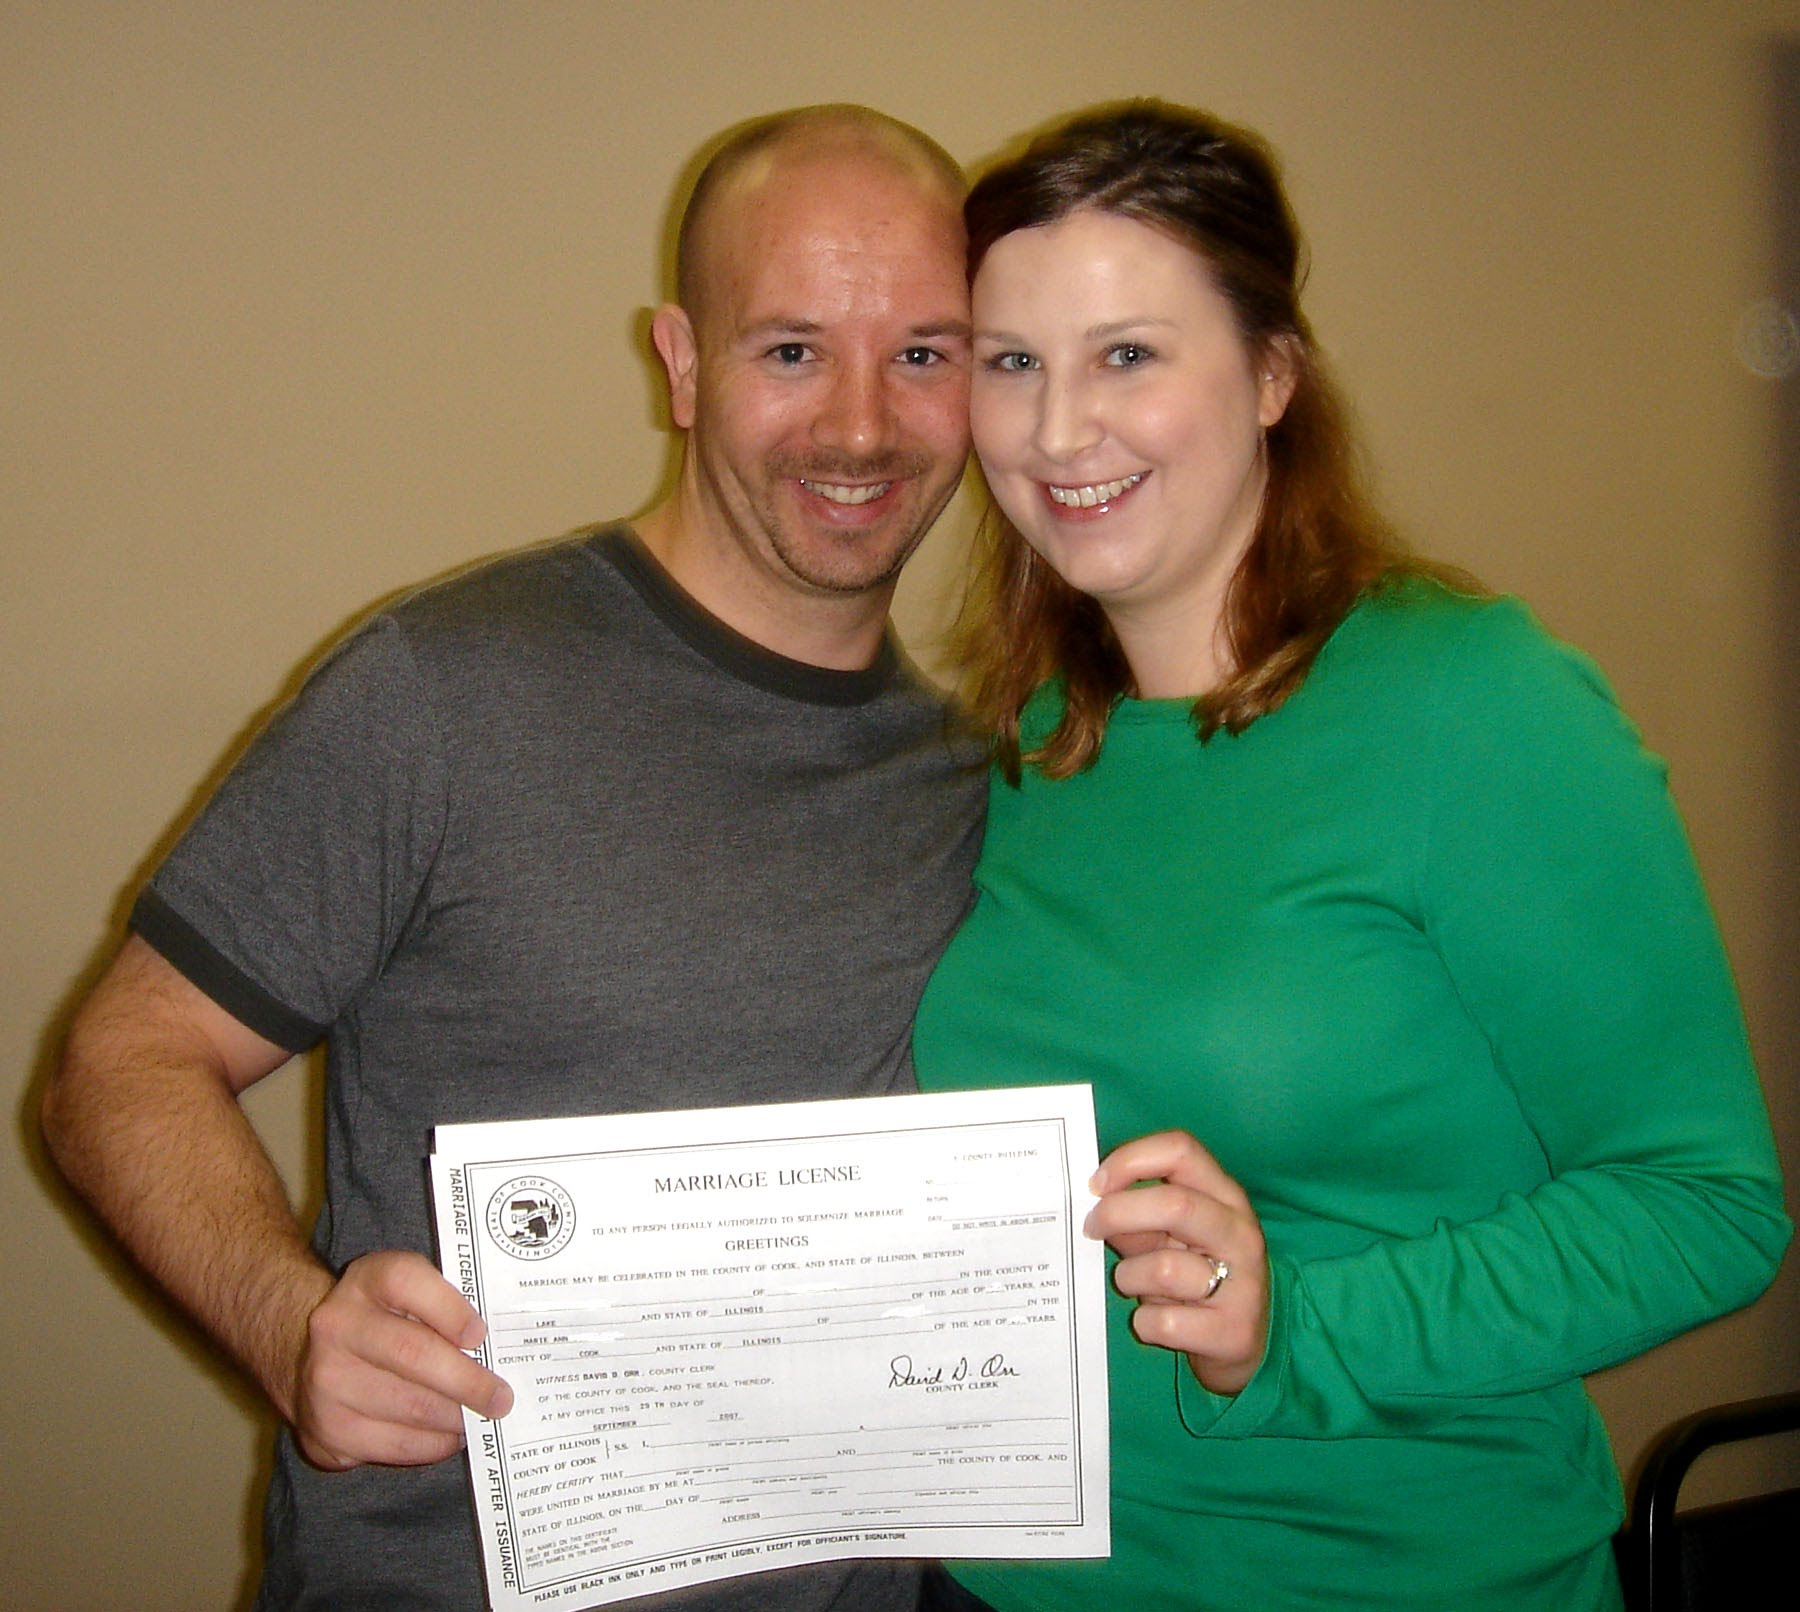 Dupage County Marriage License Copy